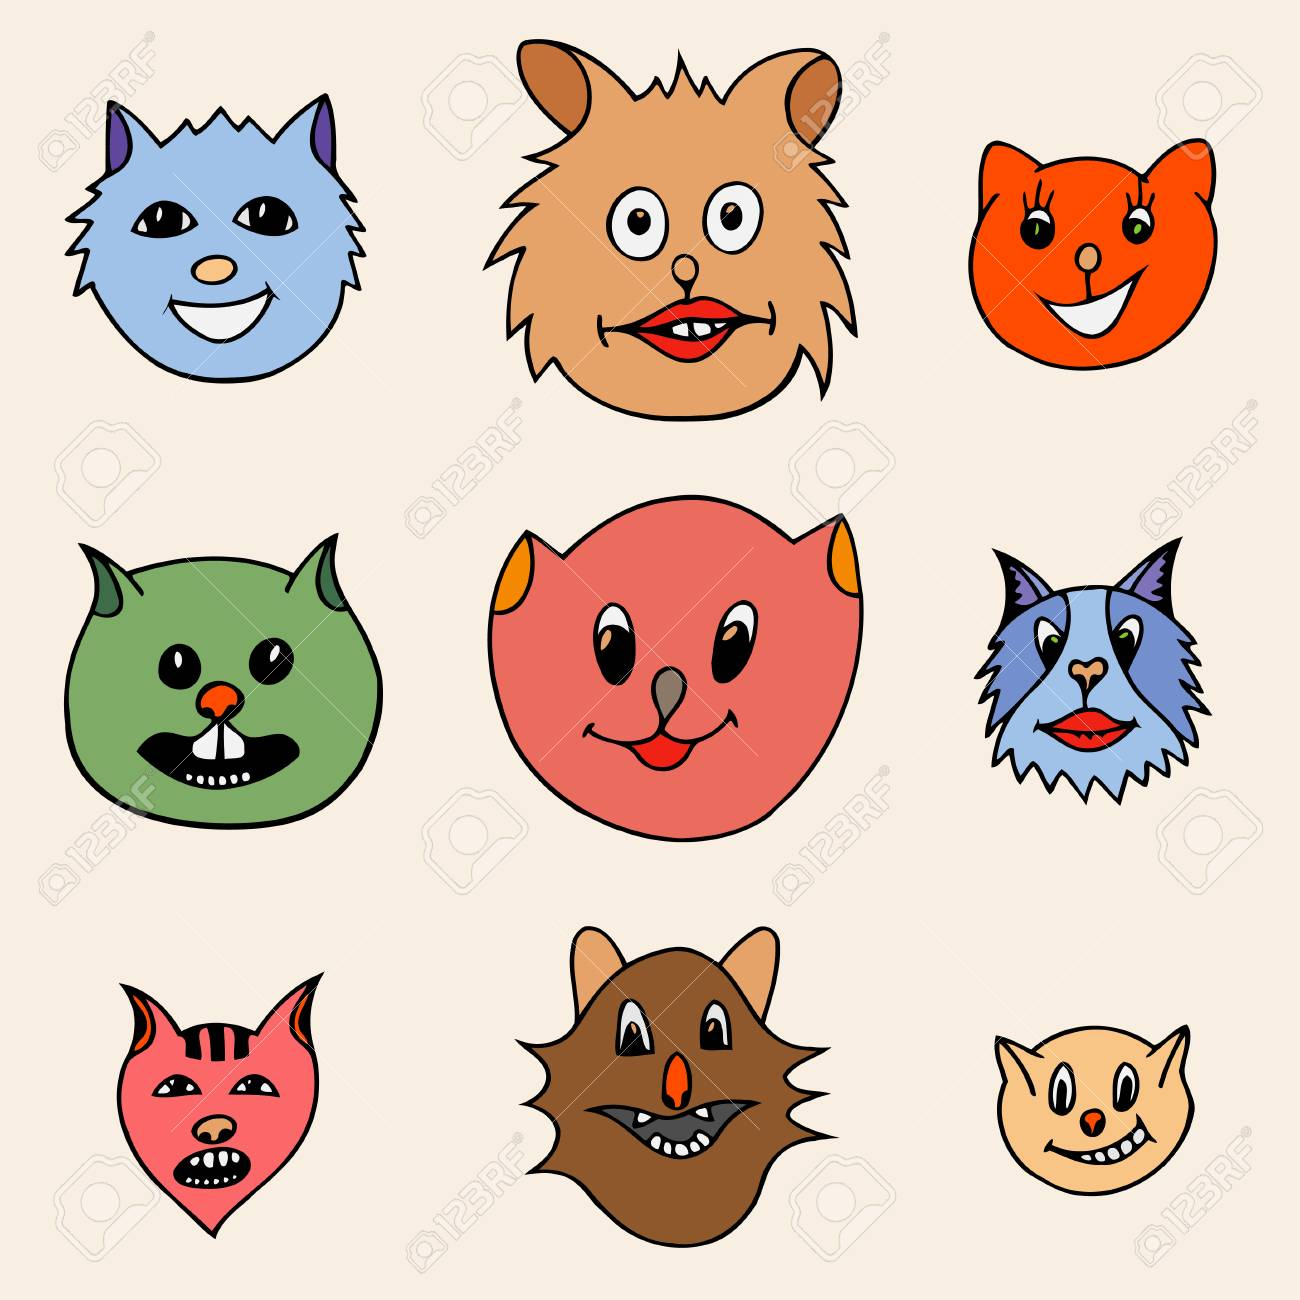 Set Of Different Adorable Cartoon Cats Faces Colored Vector